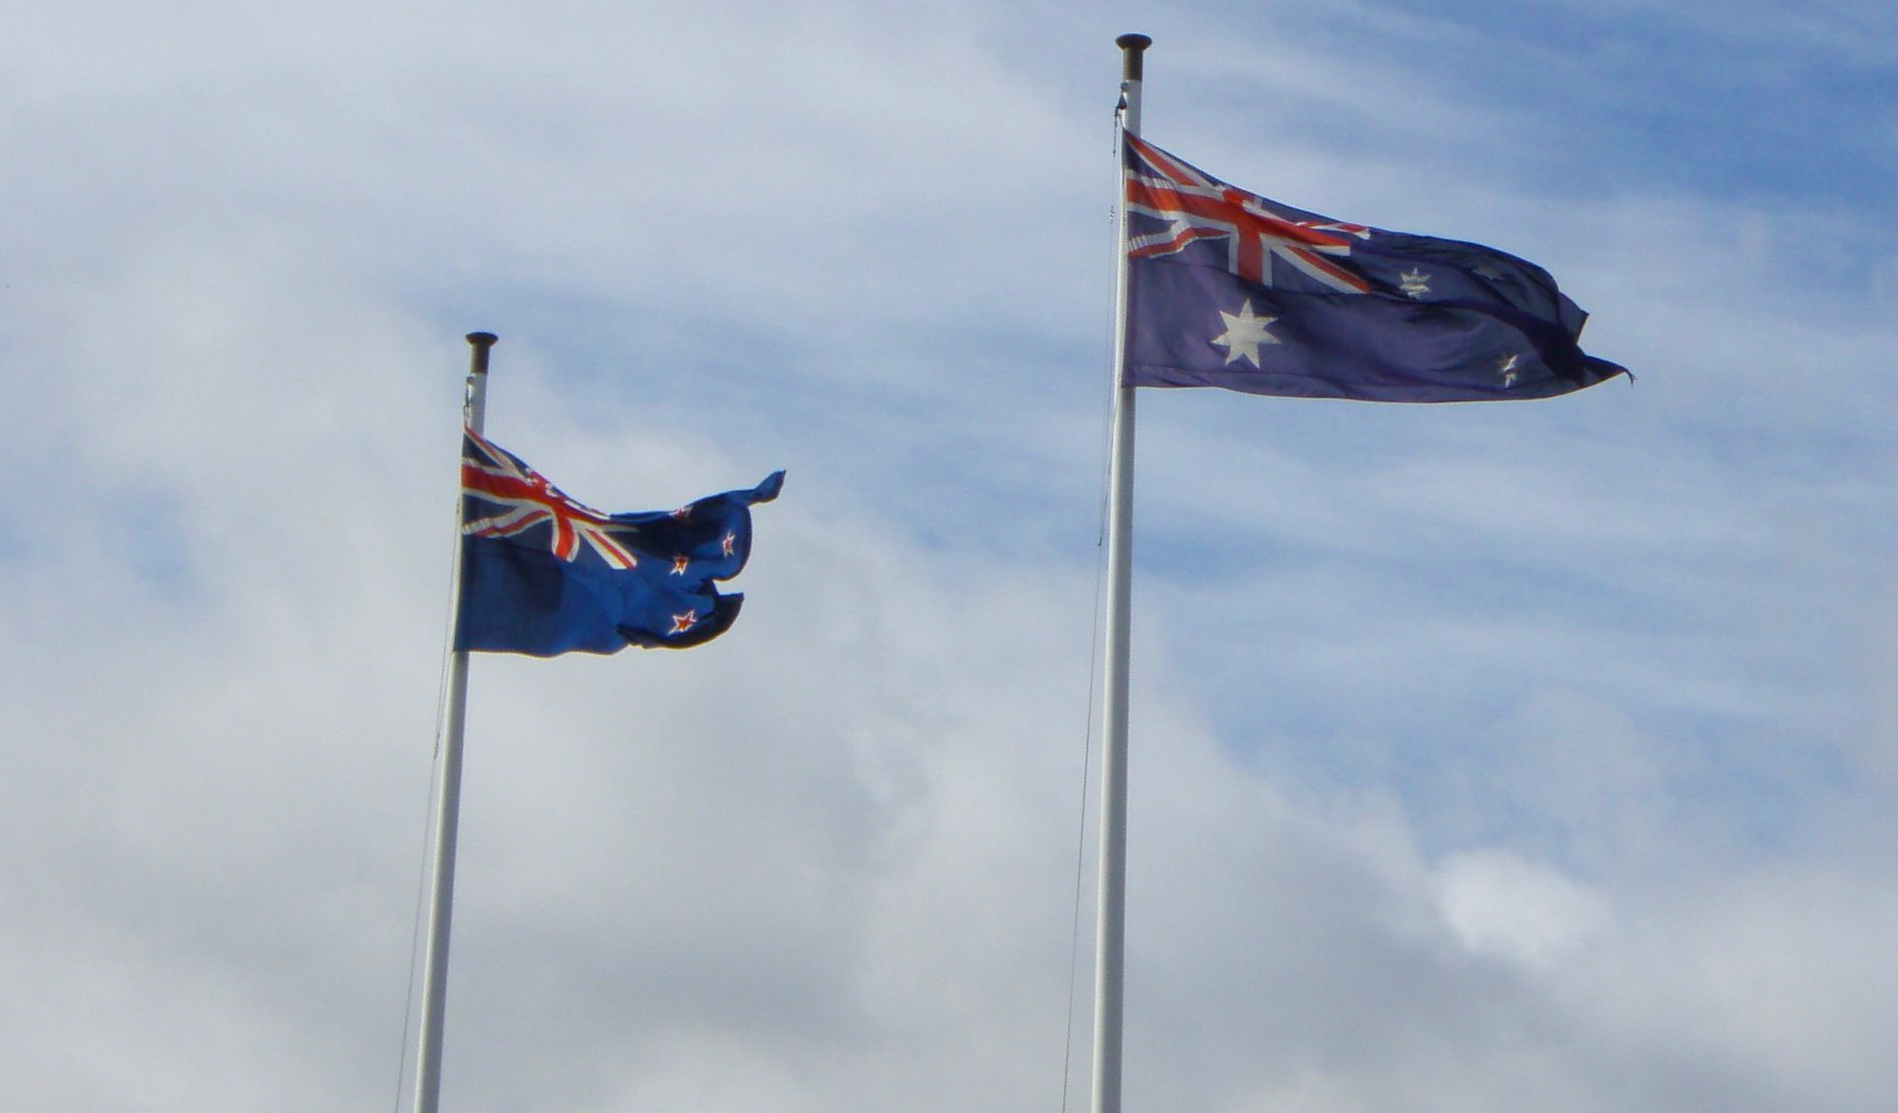 200,000 New Zealanders live in Australia without a helping hand